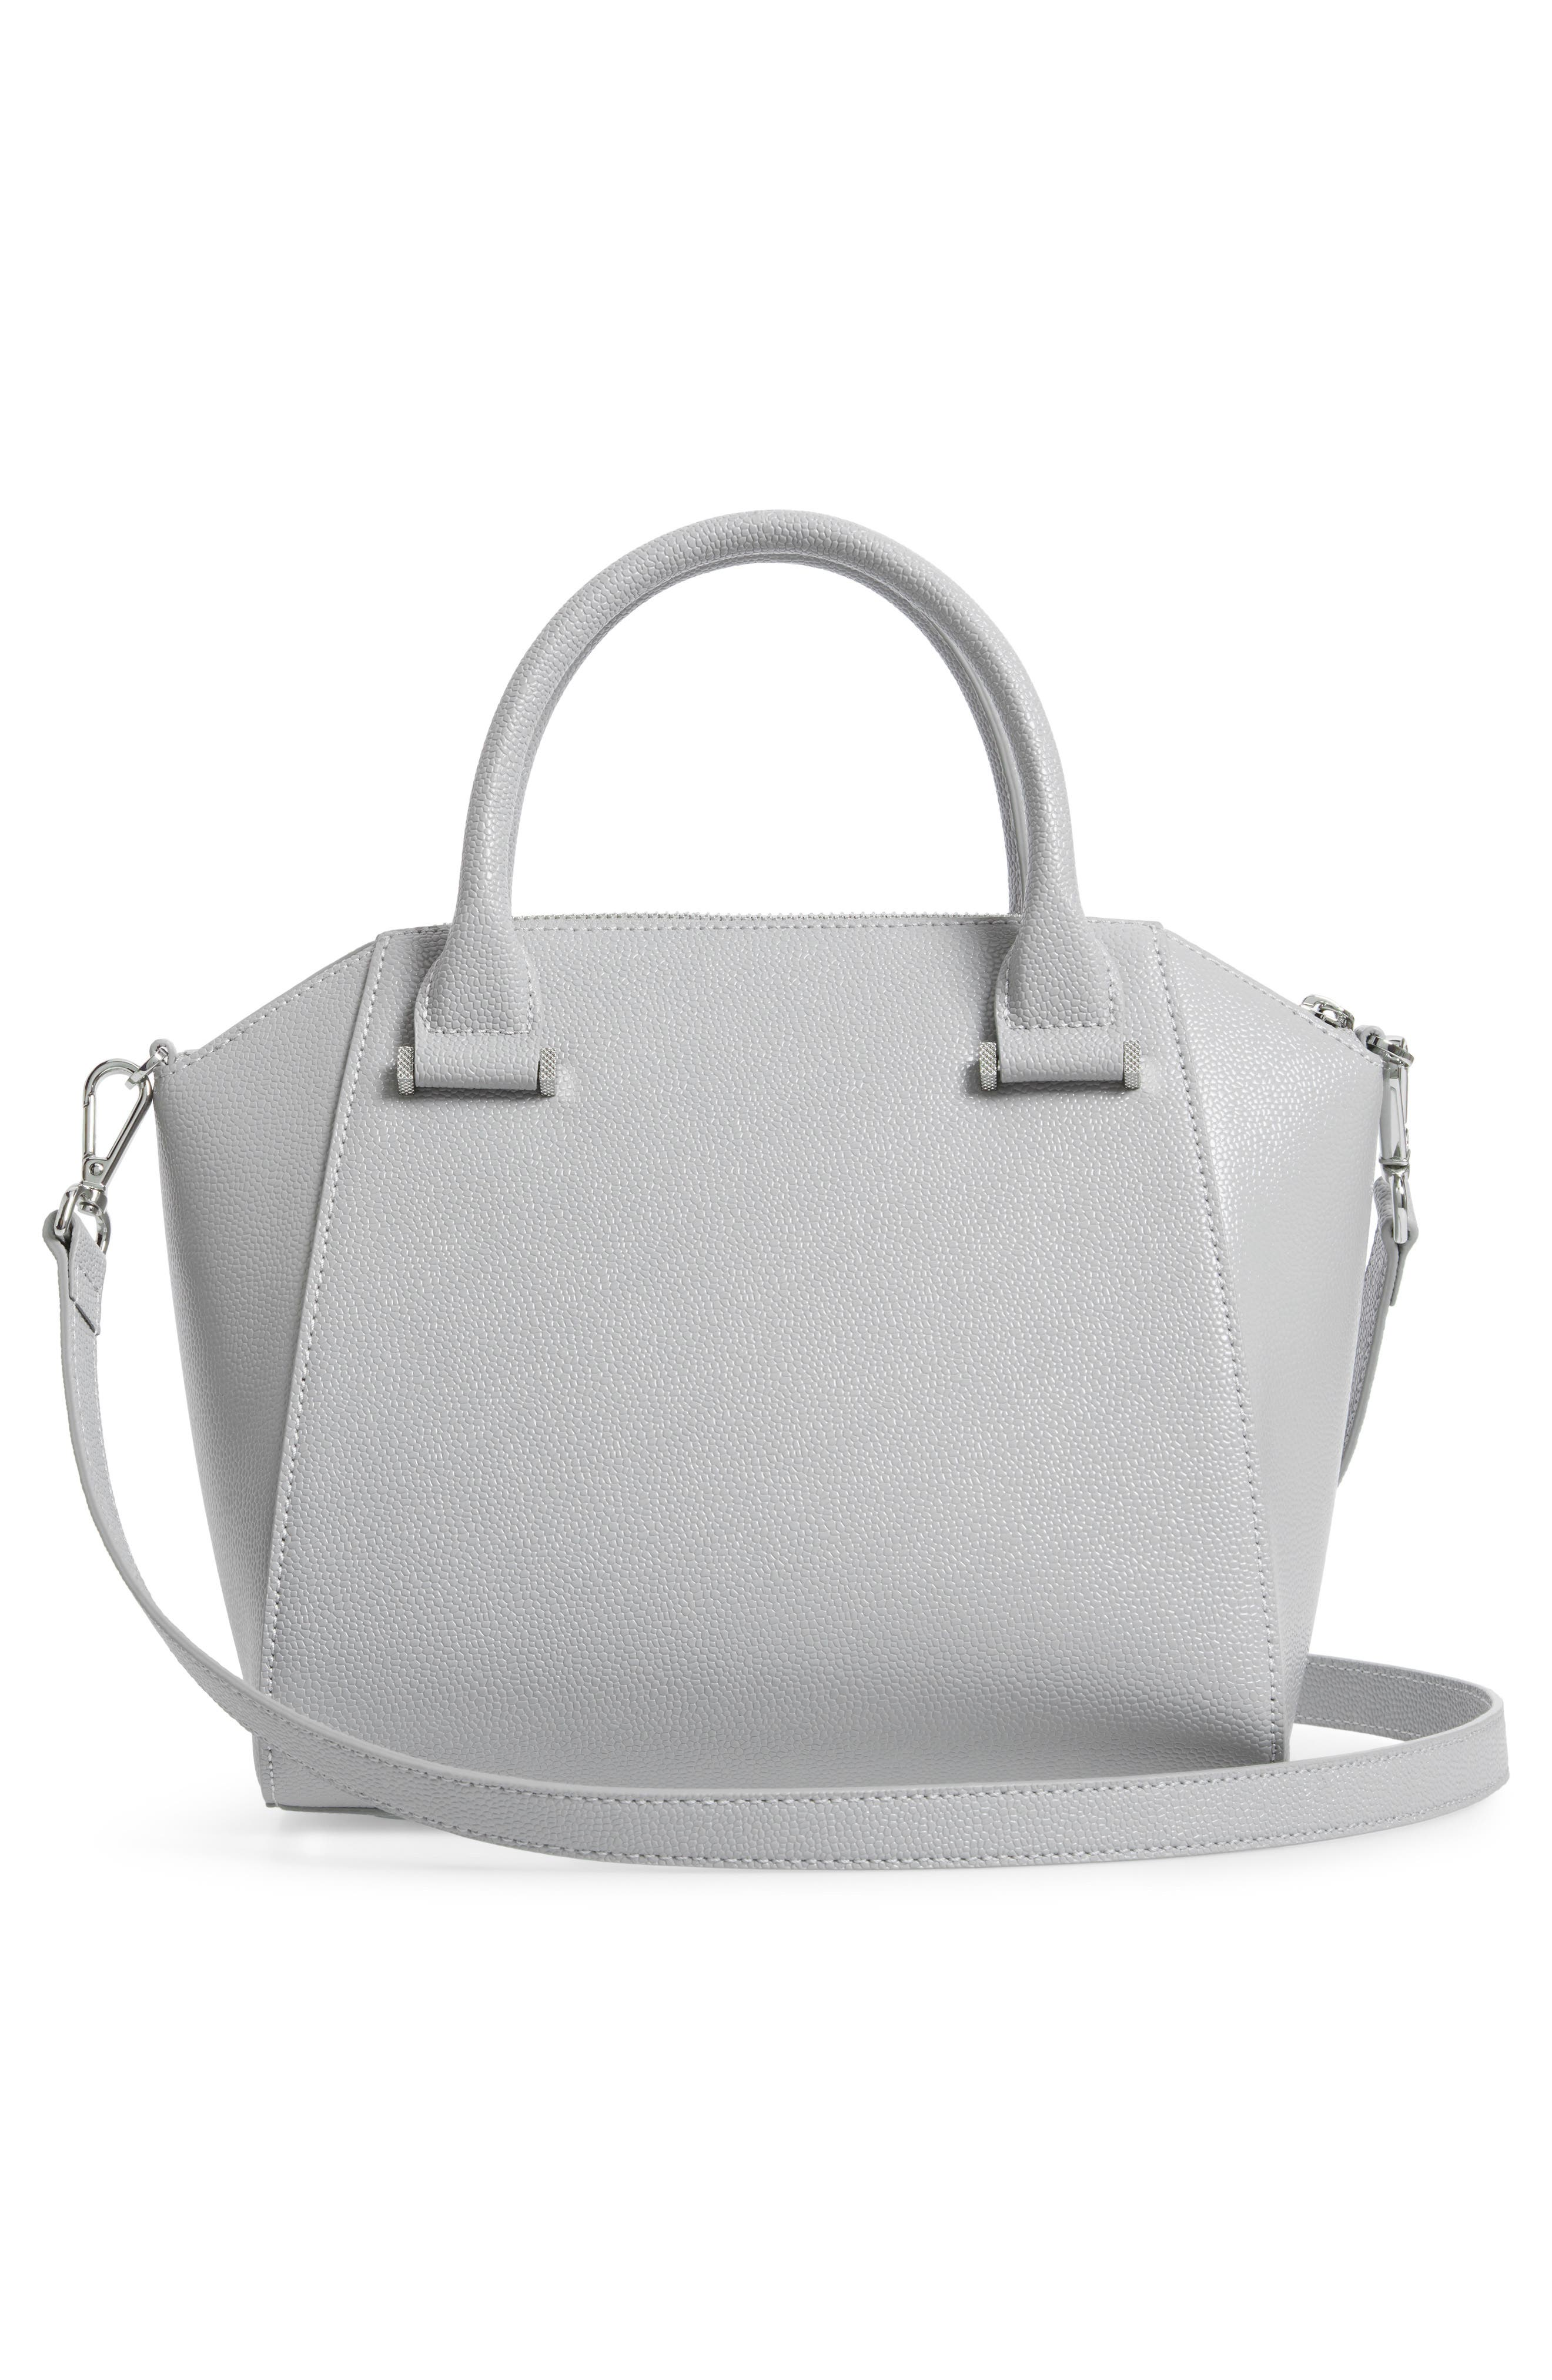 TED BAKER LONDON,                             Janne Bow Leather Tote,                             Alternate thumbnail 3, color,                             GREY